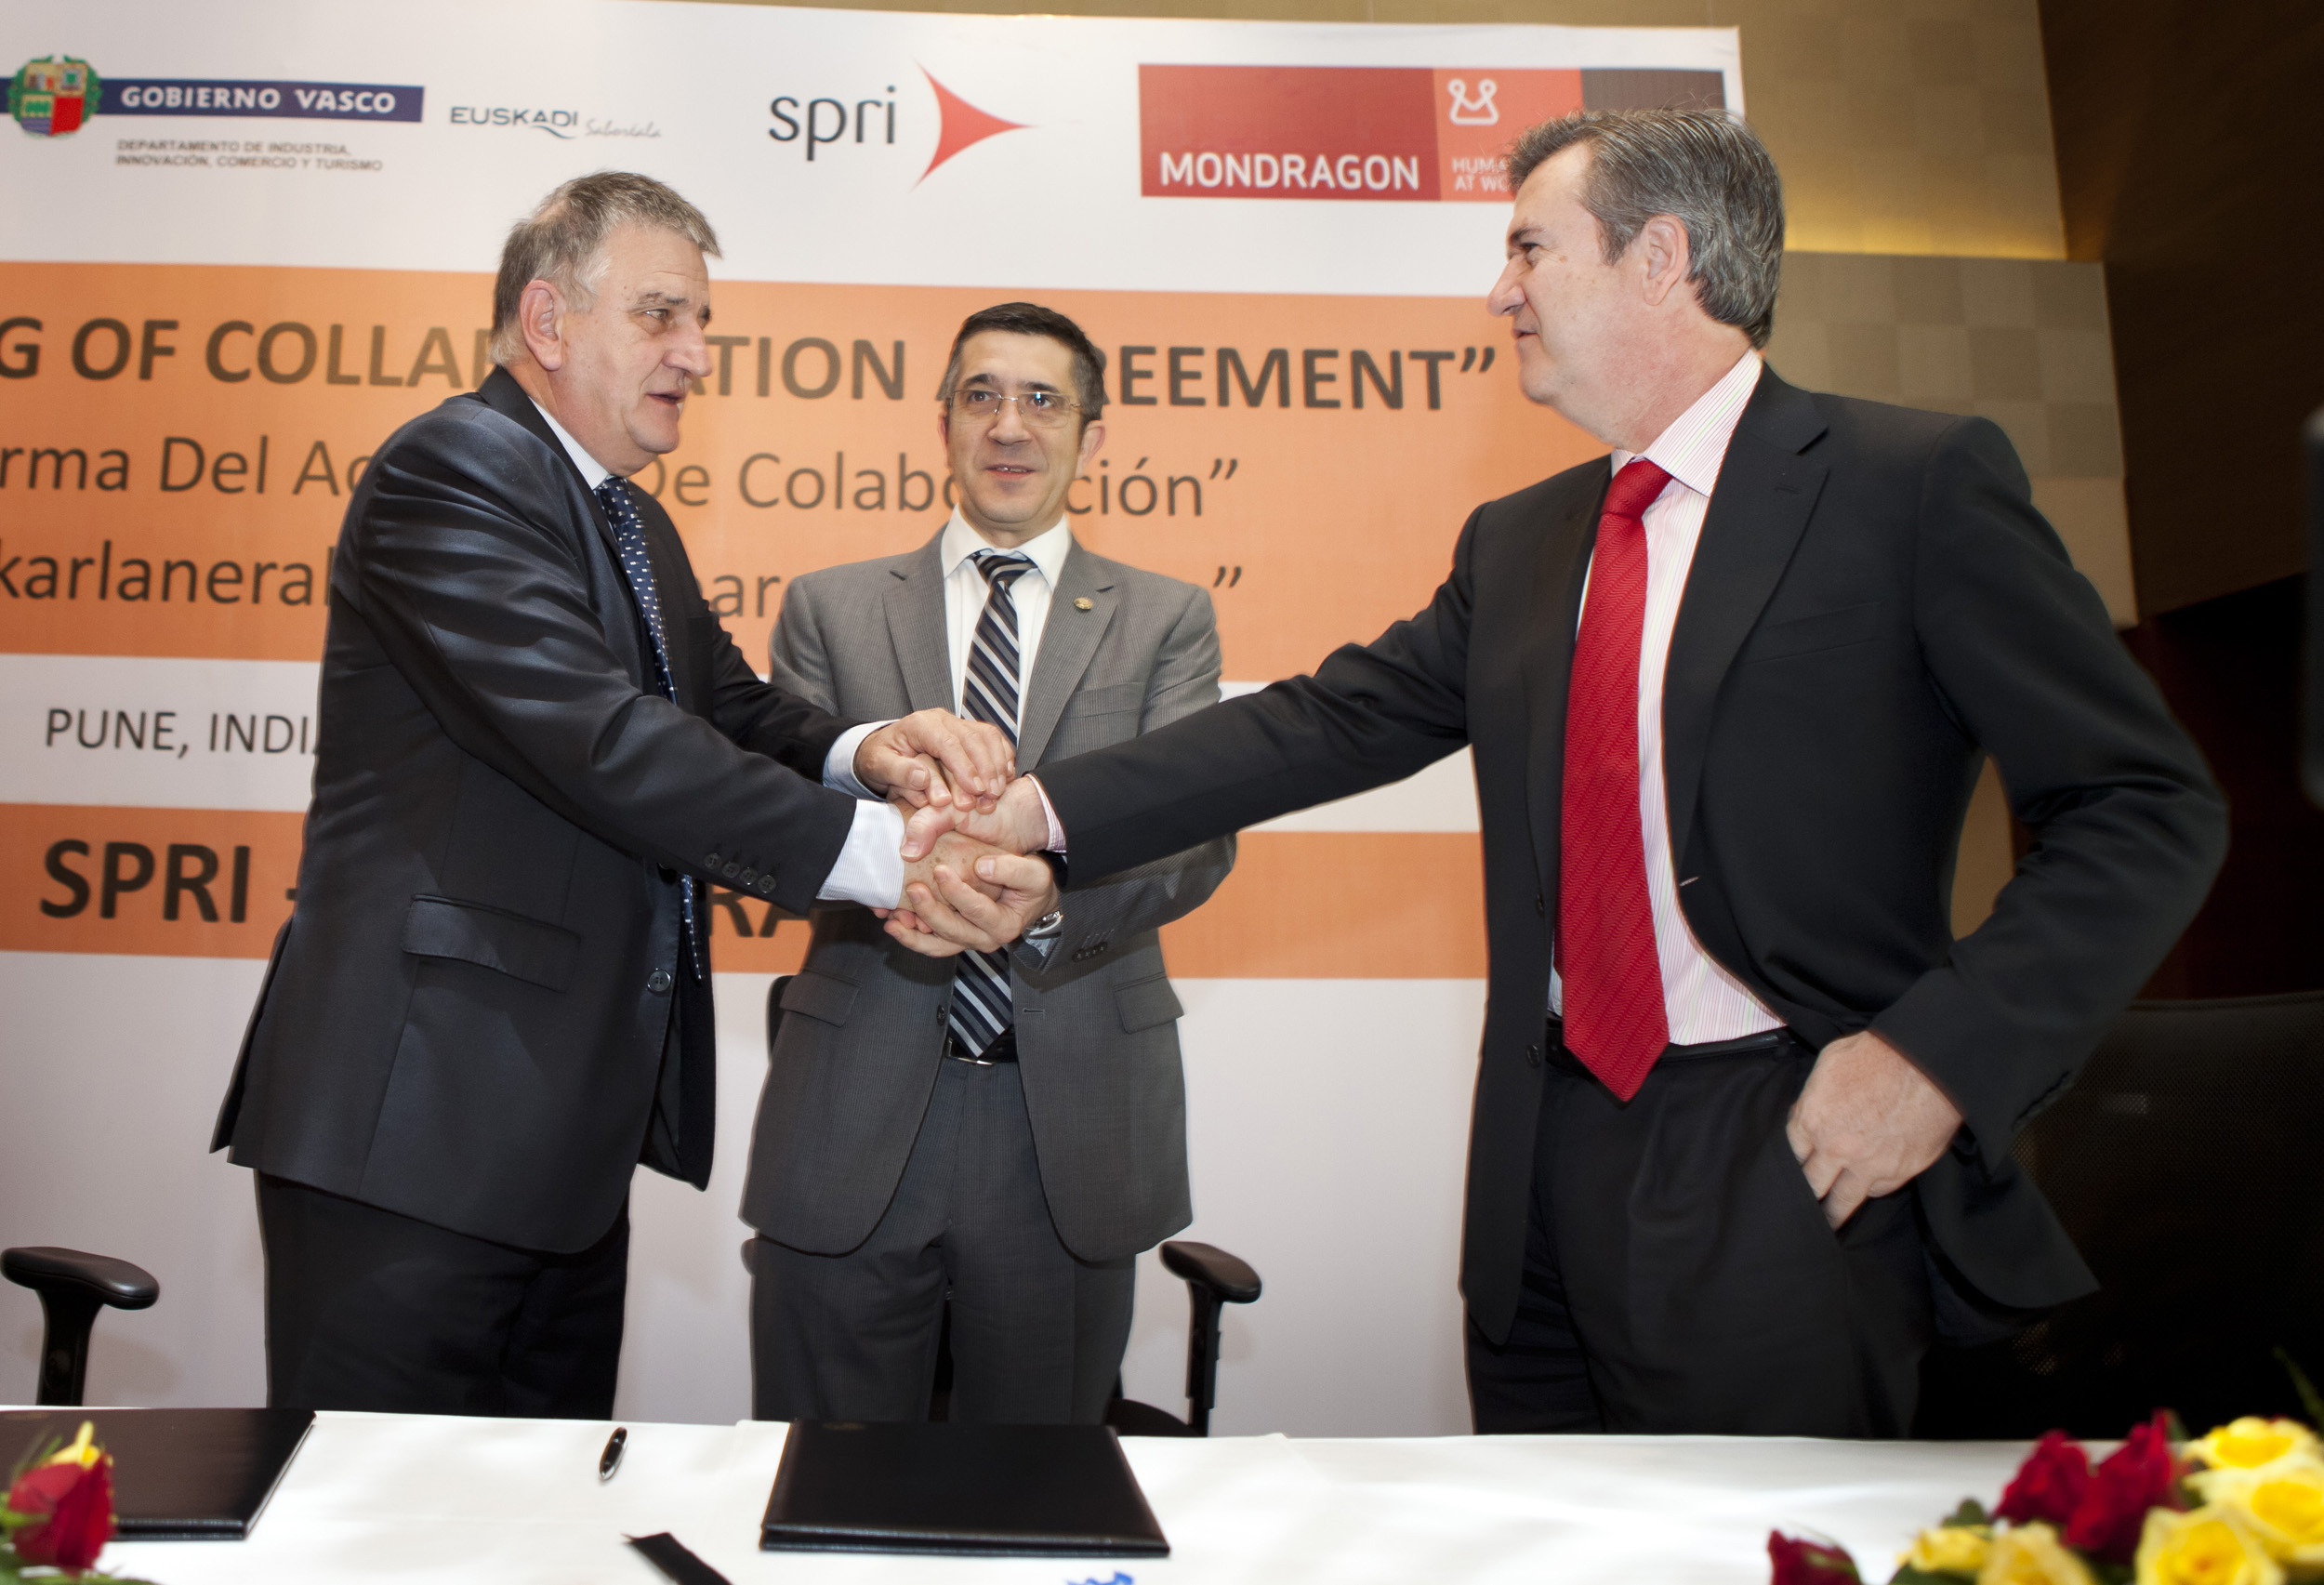 SPRI signs an agreement with Corporación Mondragón for Basque companies not part of the cooperative to be able to set up at its business park in India